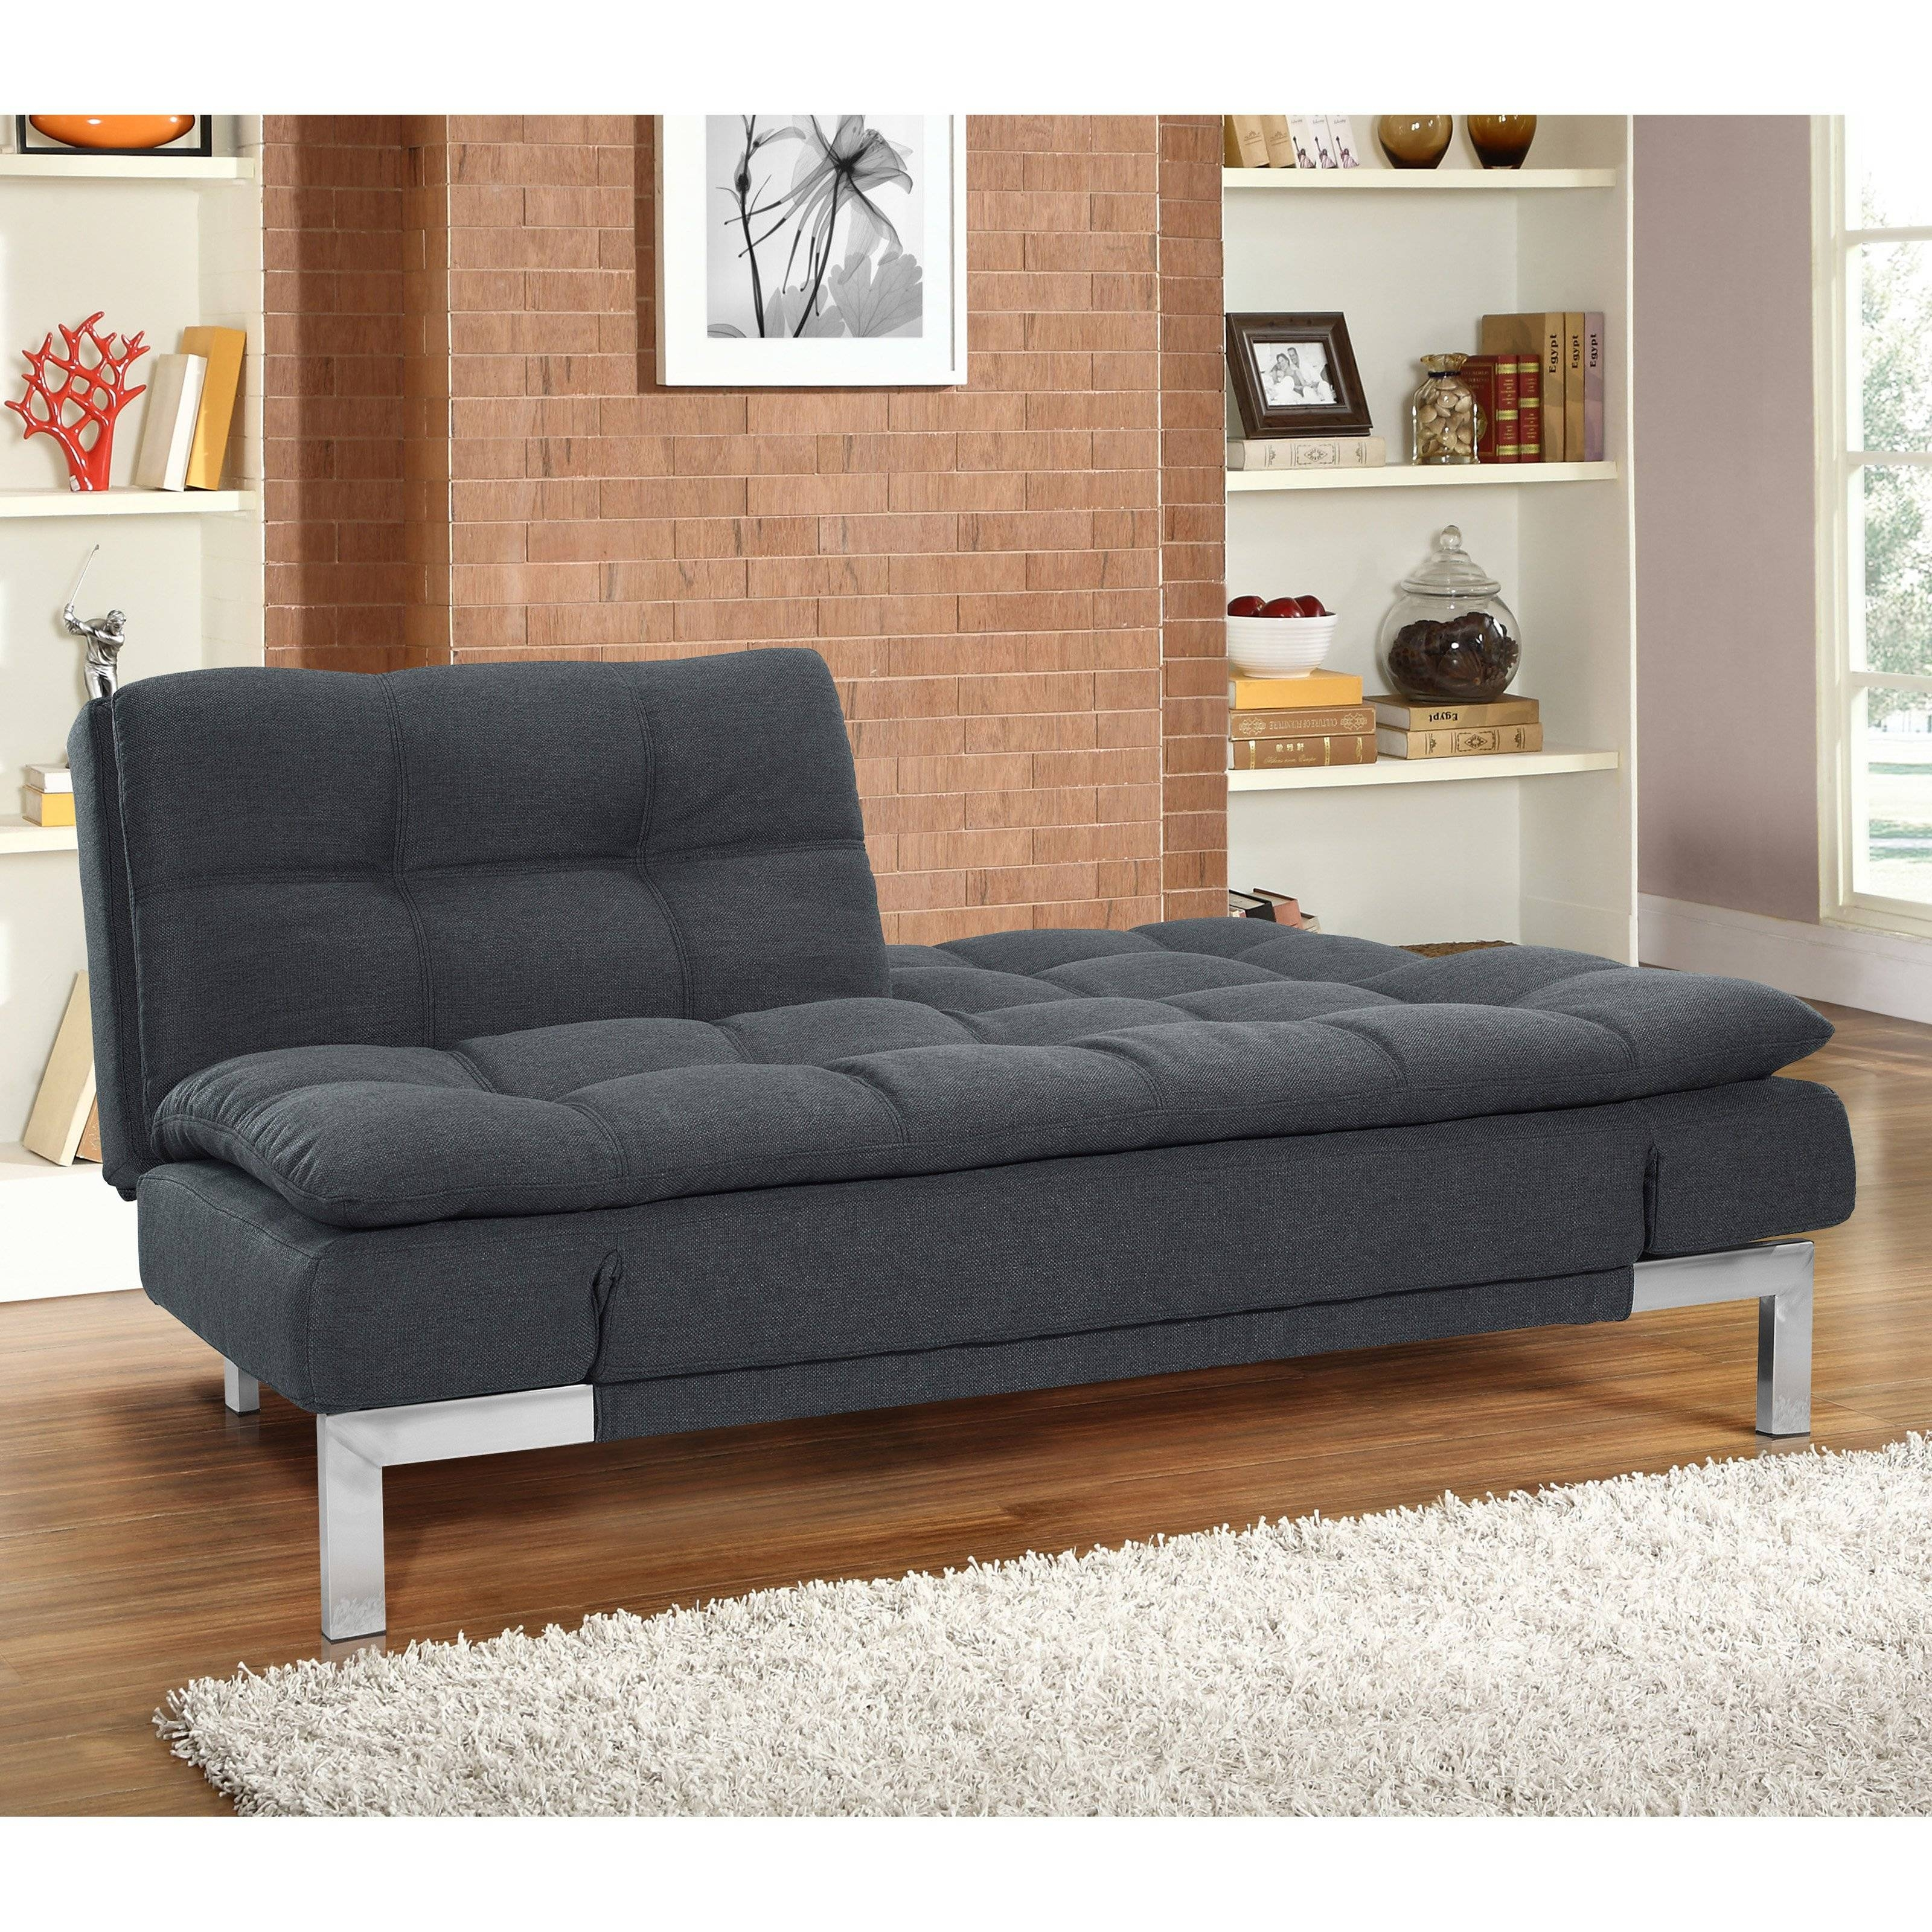 Furniture: Futon Kmart For Easily Convert To A Bed — Iahrapd2016 for Kmart Futon Beds (Image 2 of 15)